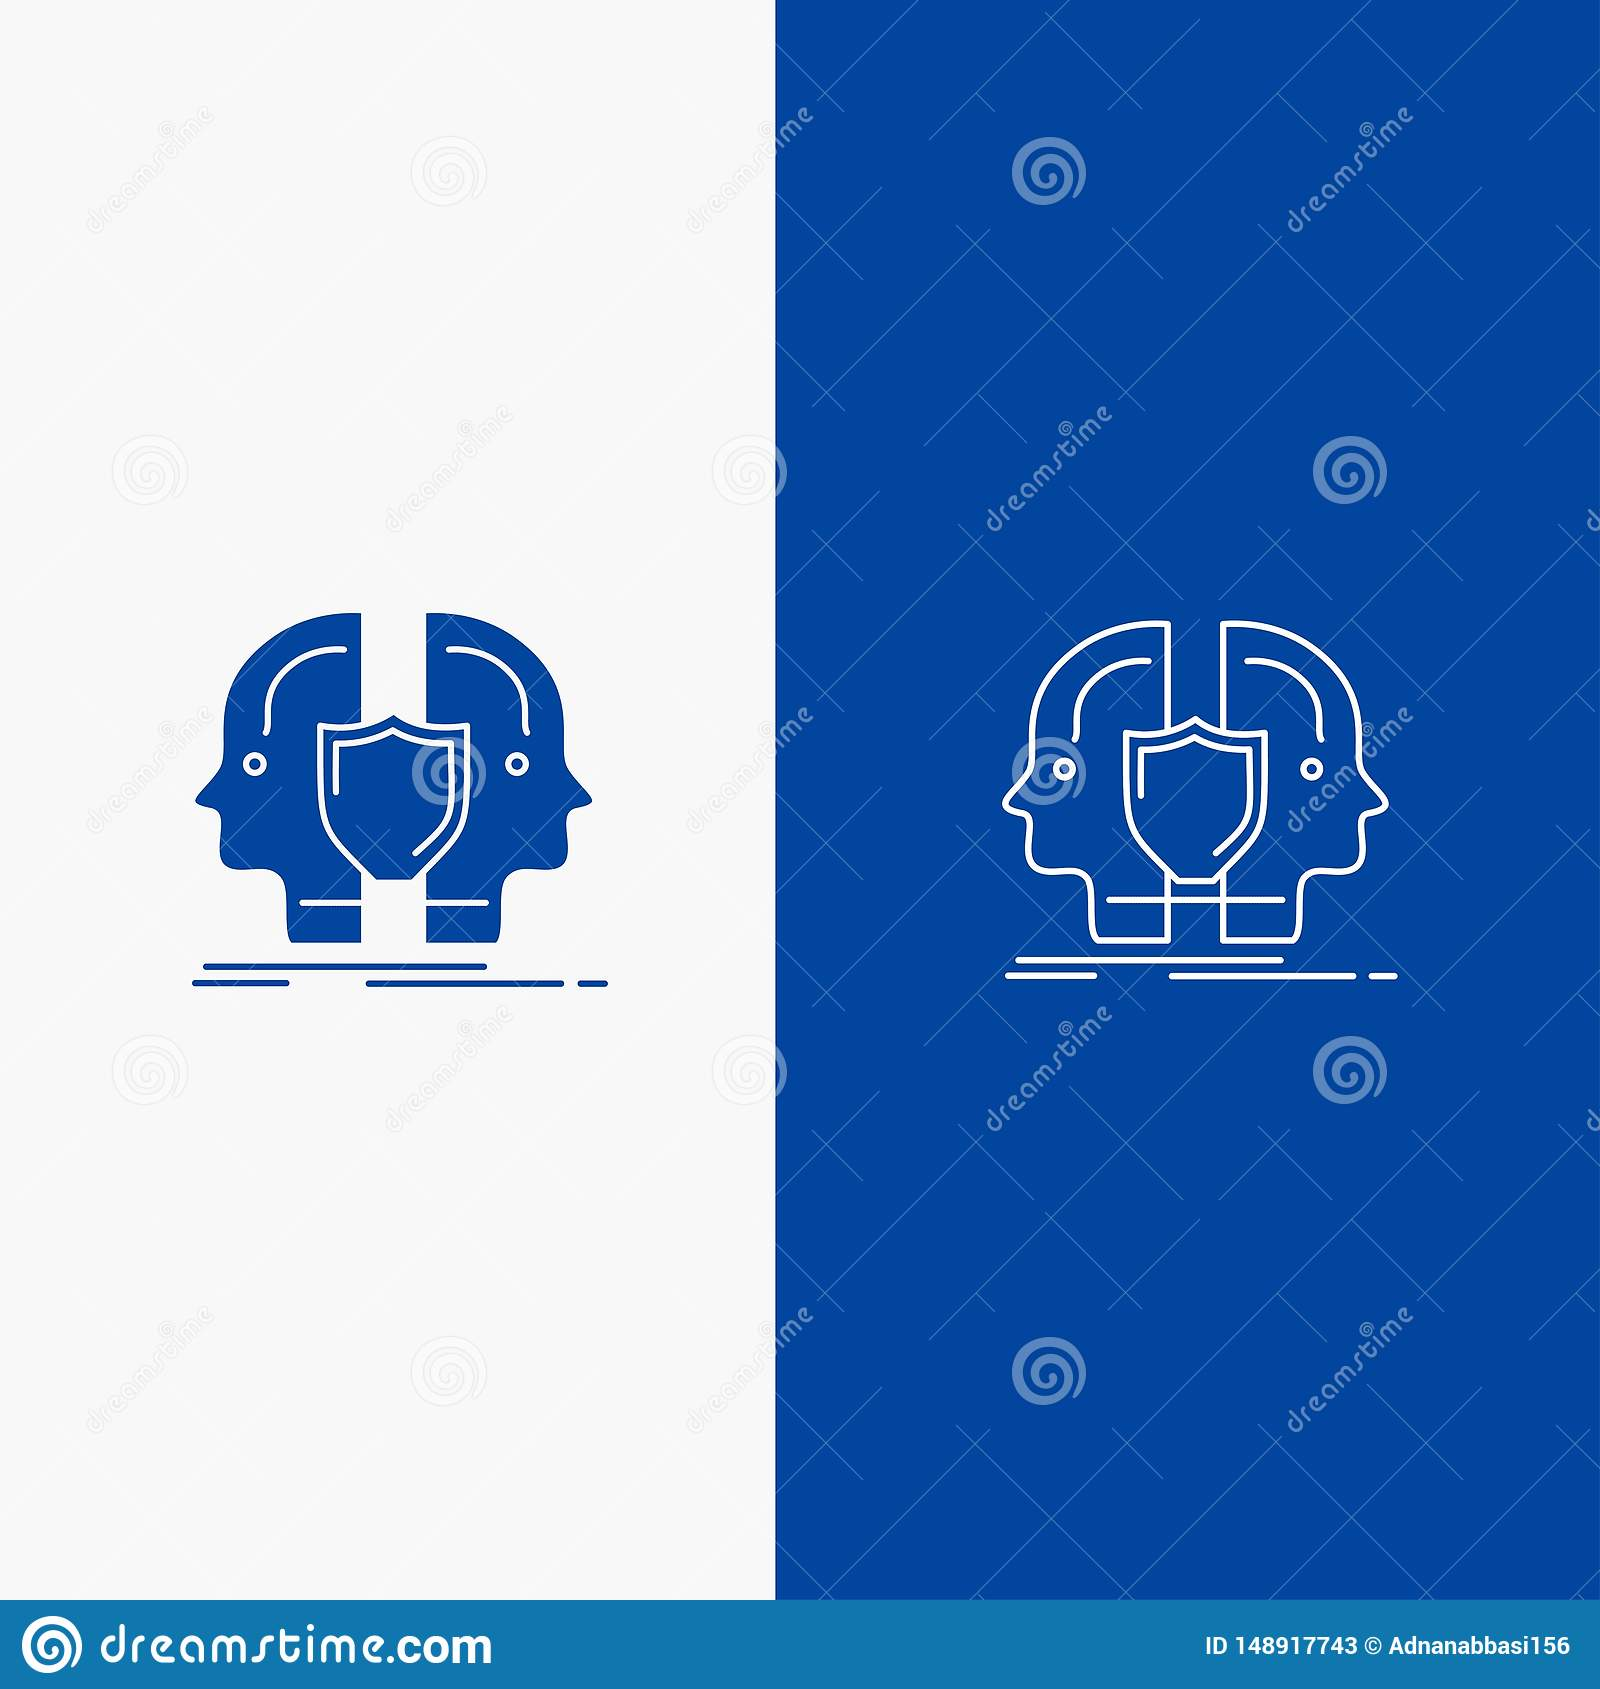 dual identity stock illustrations 504 dual identity stock illustrations vectors clipart dreamstime https www dreamstime com man face dual identity shield line glyph solid icon blue banner image148917743